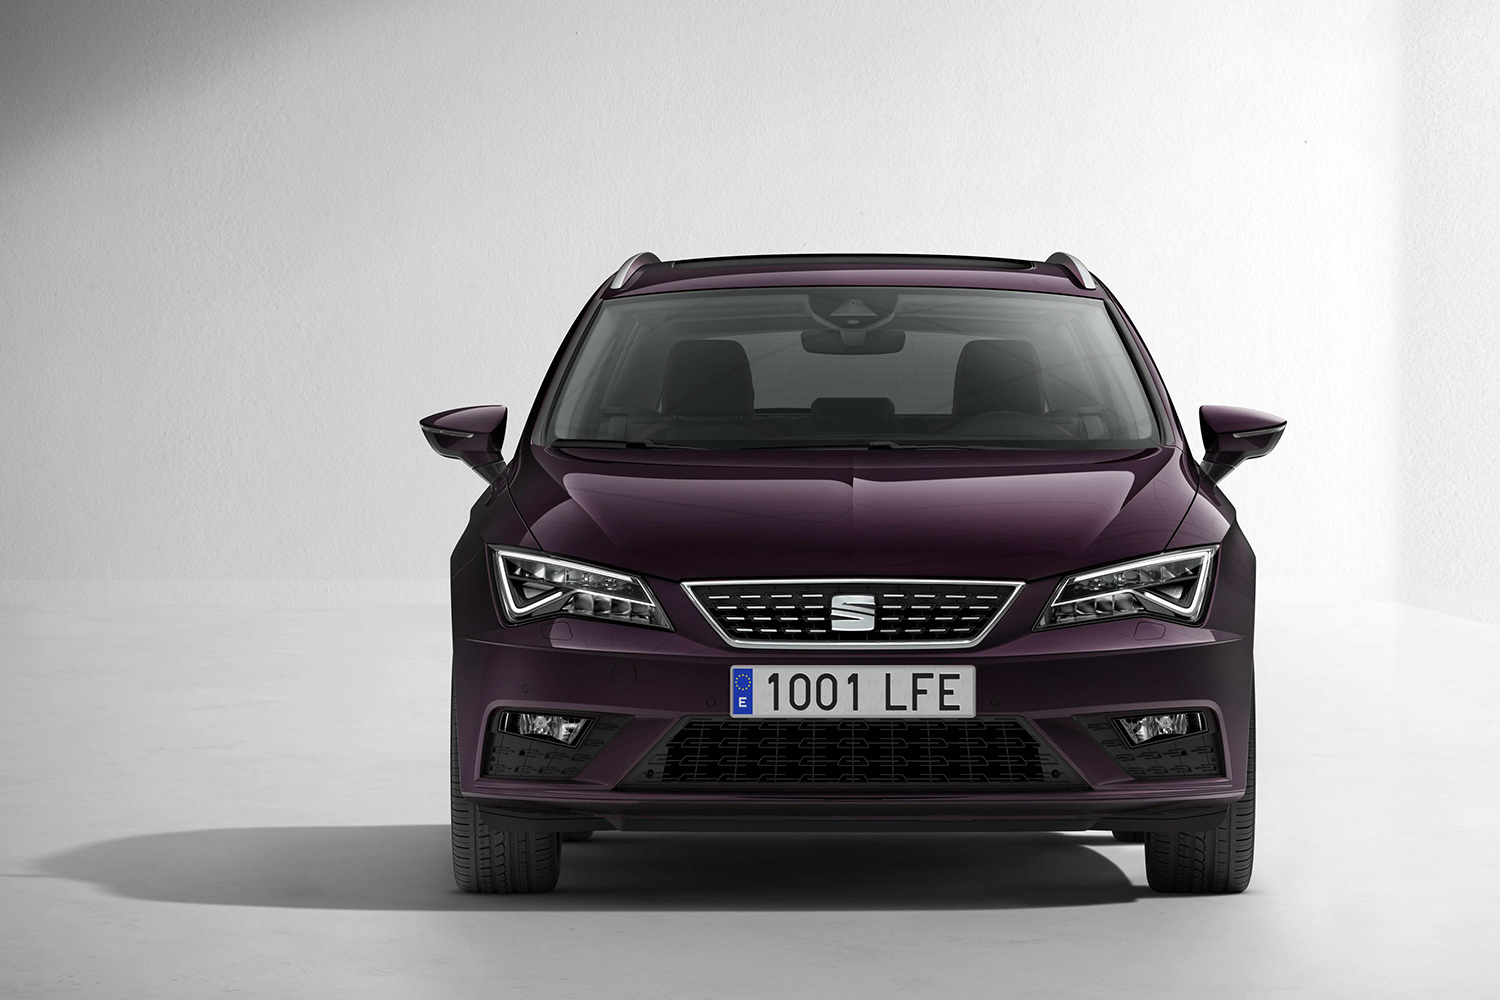 seat leon st se technology 1 0 tsi review. Black Bedroom Furniture Sets. Home Design Ideas